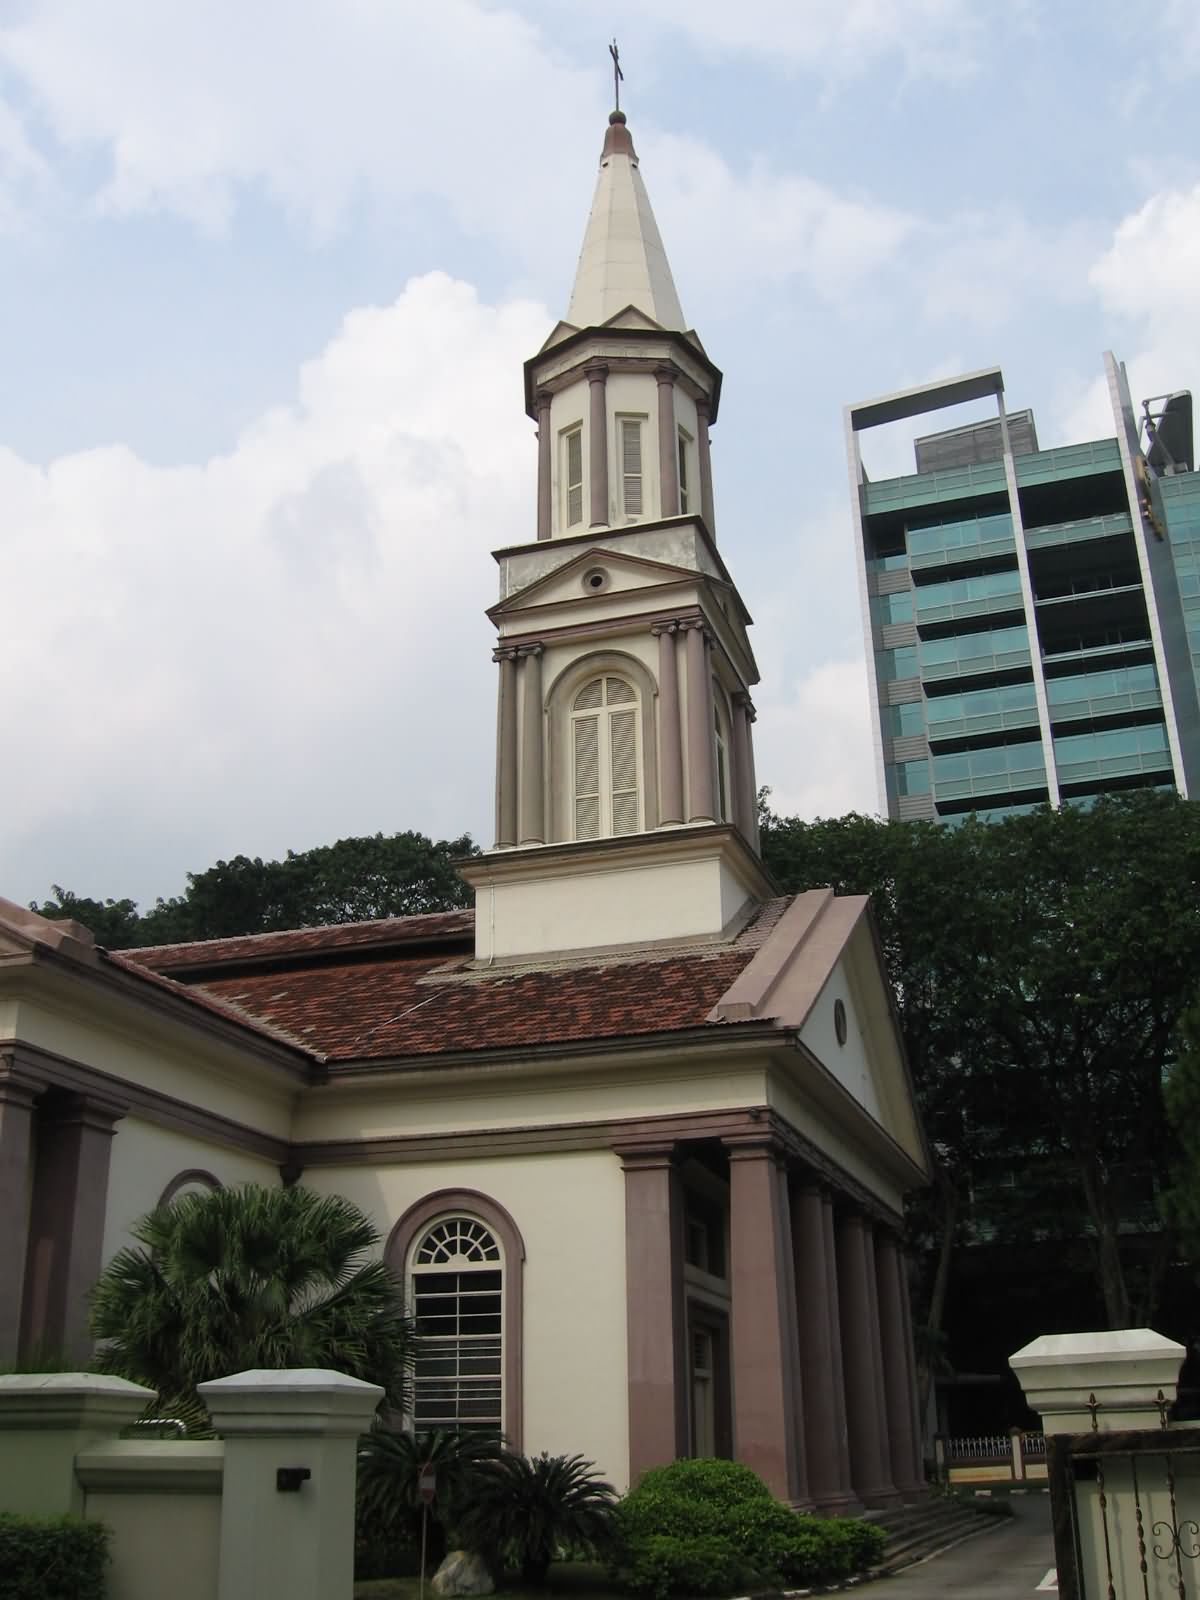 Full View Of The Steeple Of The Cathedral, Singapore